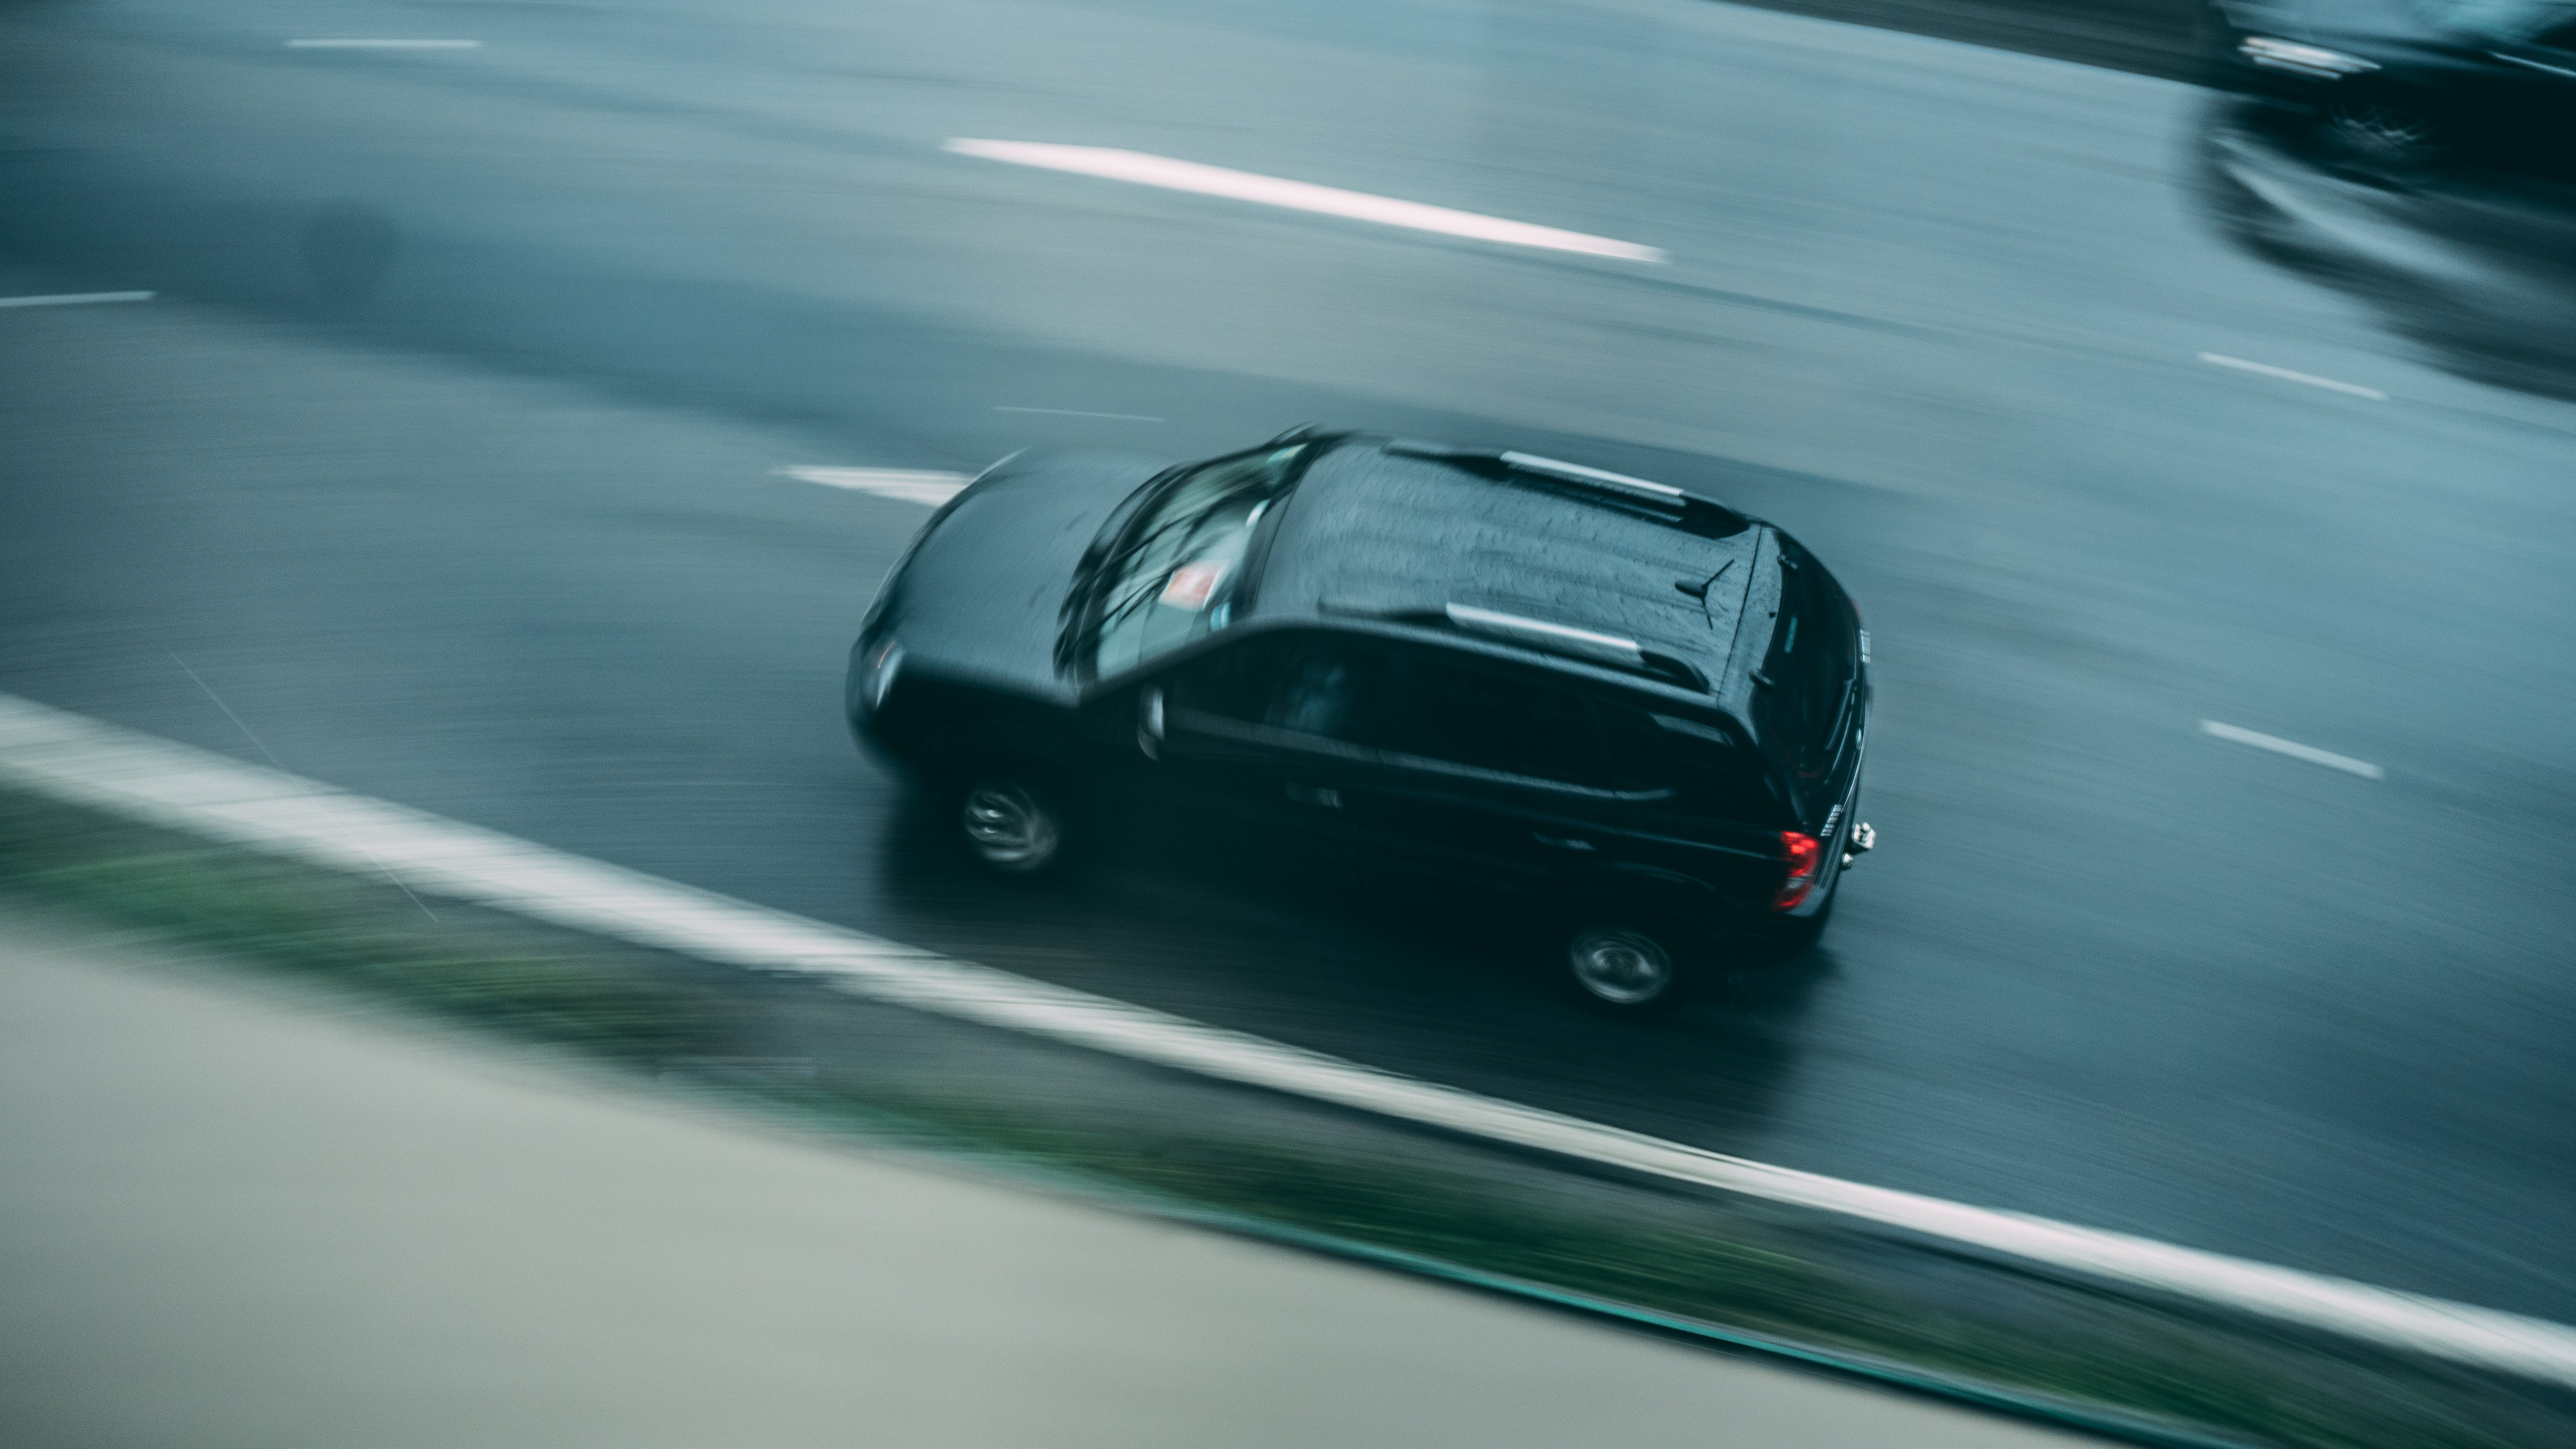 Aerial View of Black Suv Running on Road